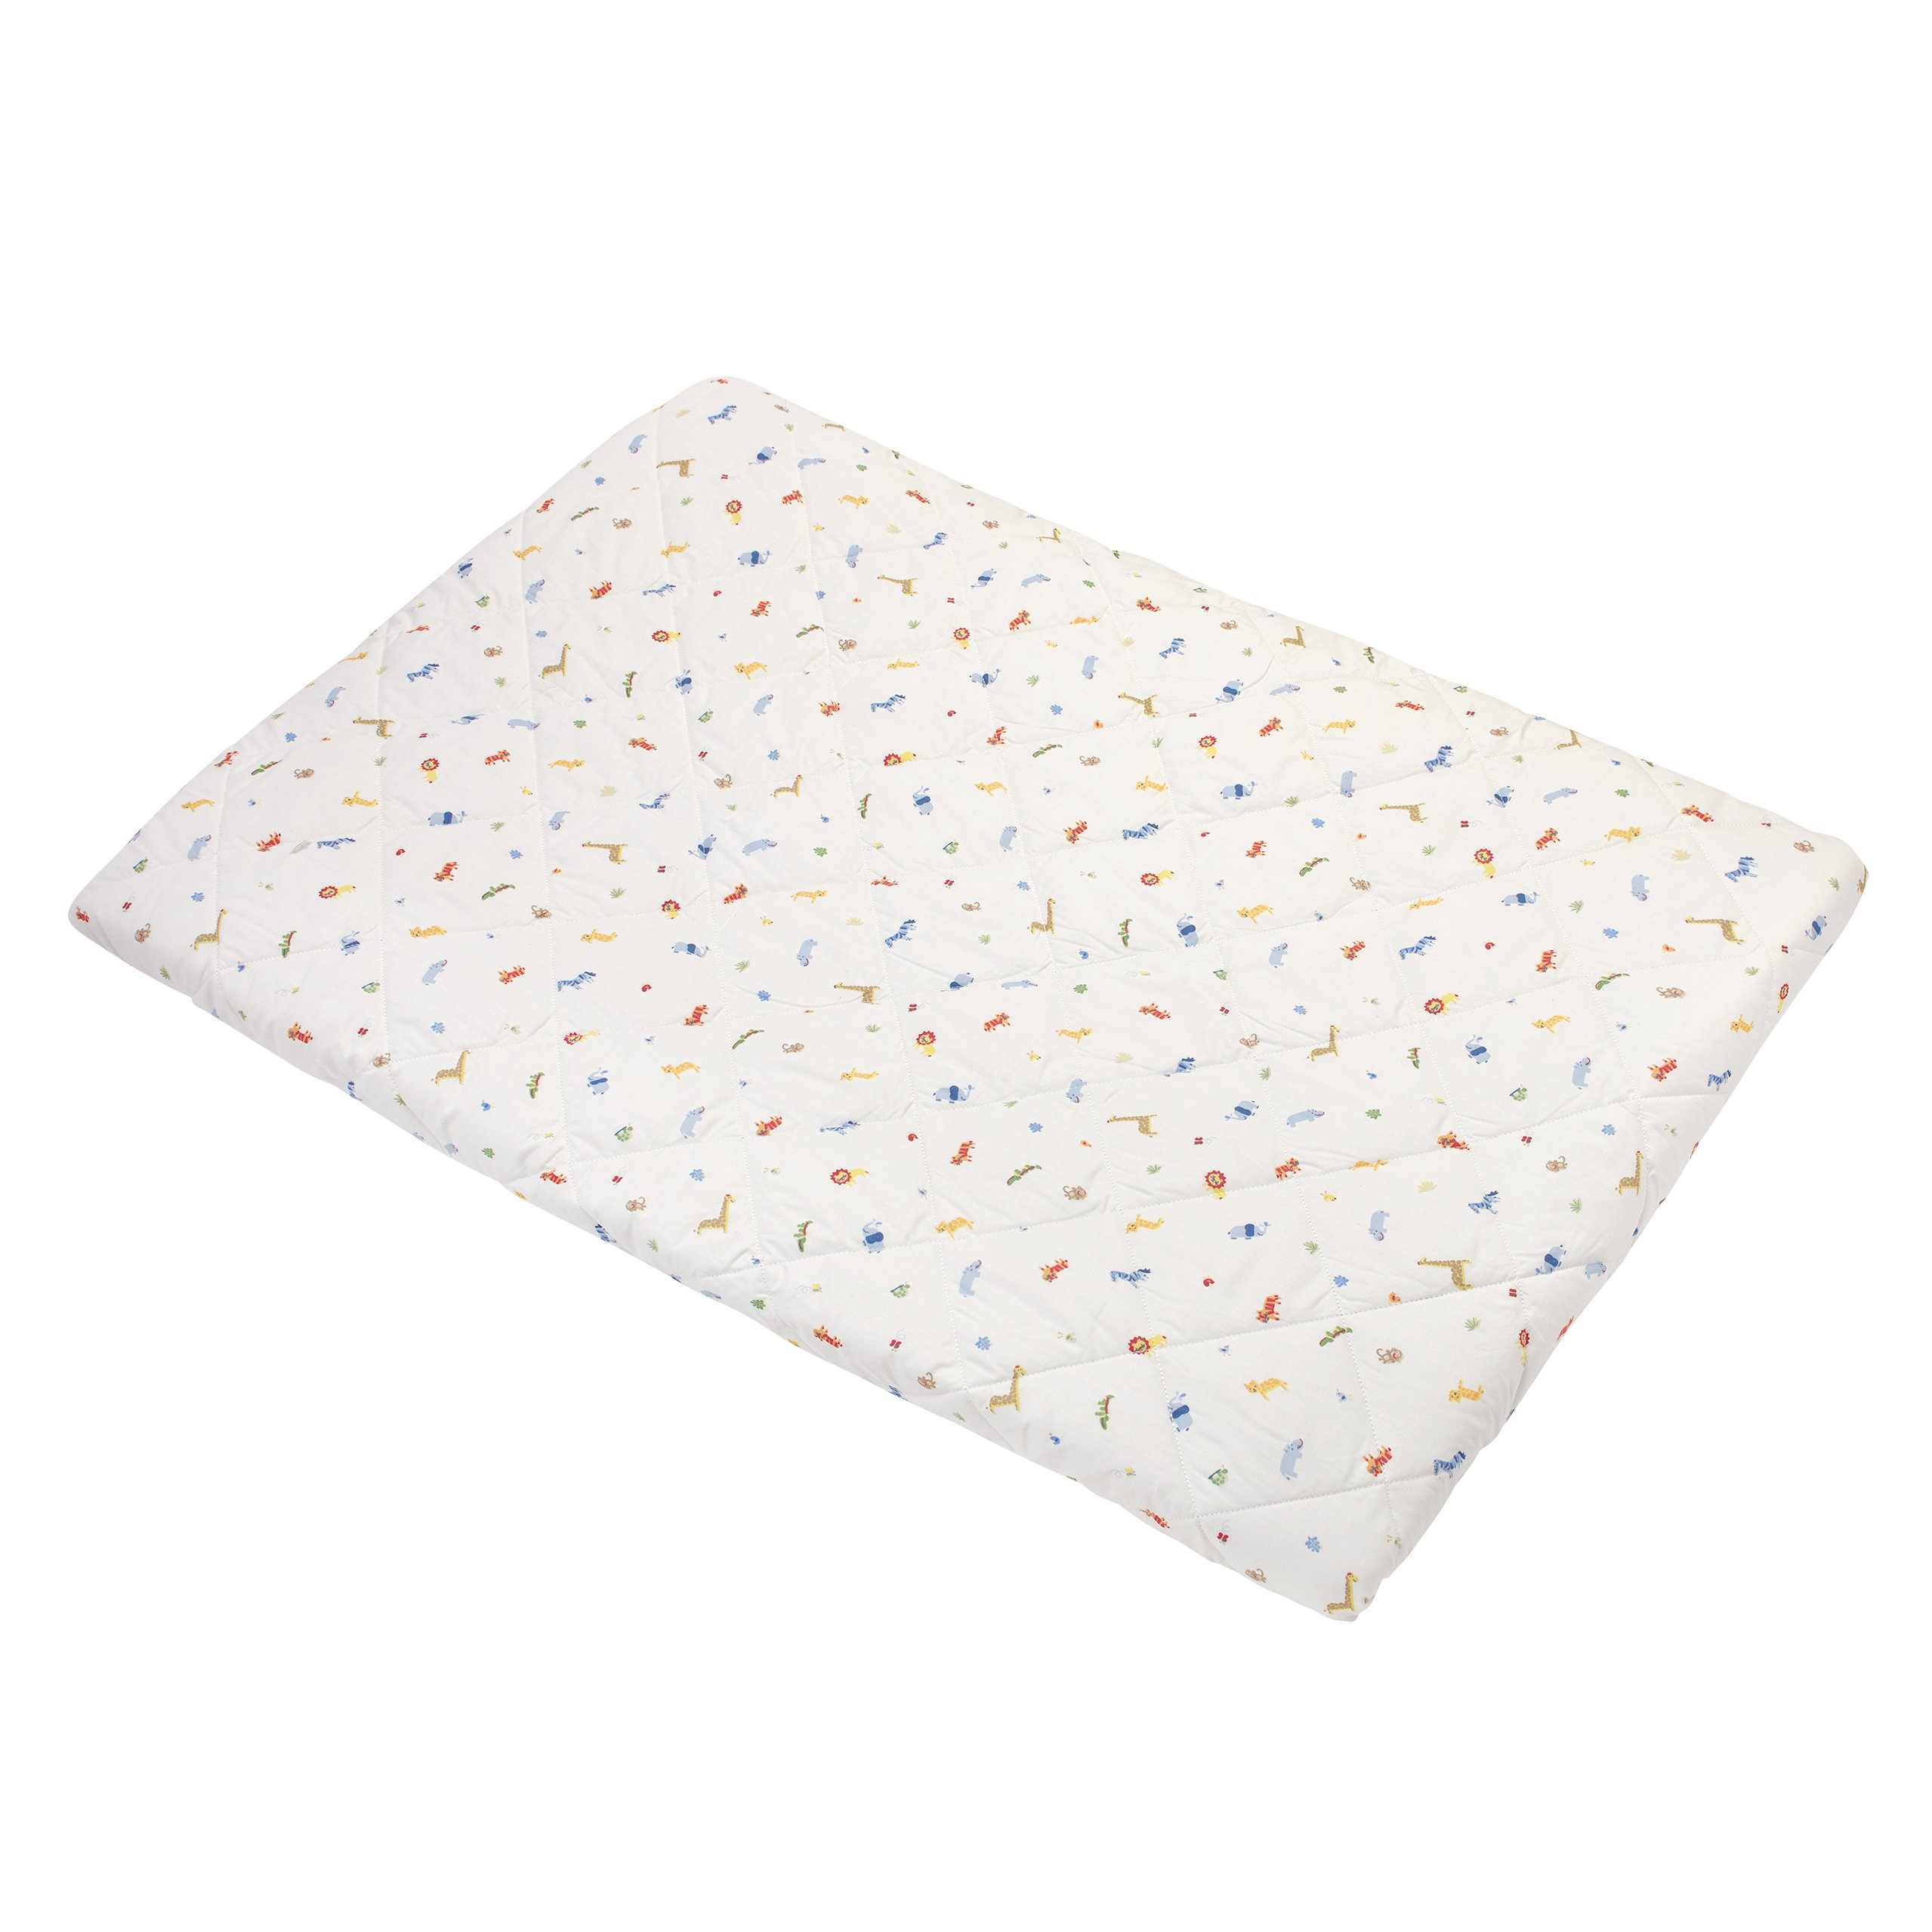 Carter's Playard Sheet, Animal Print, One Size